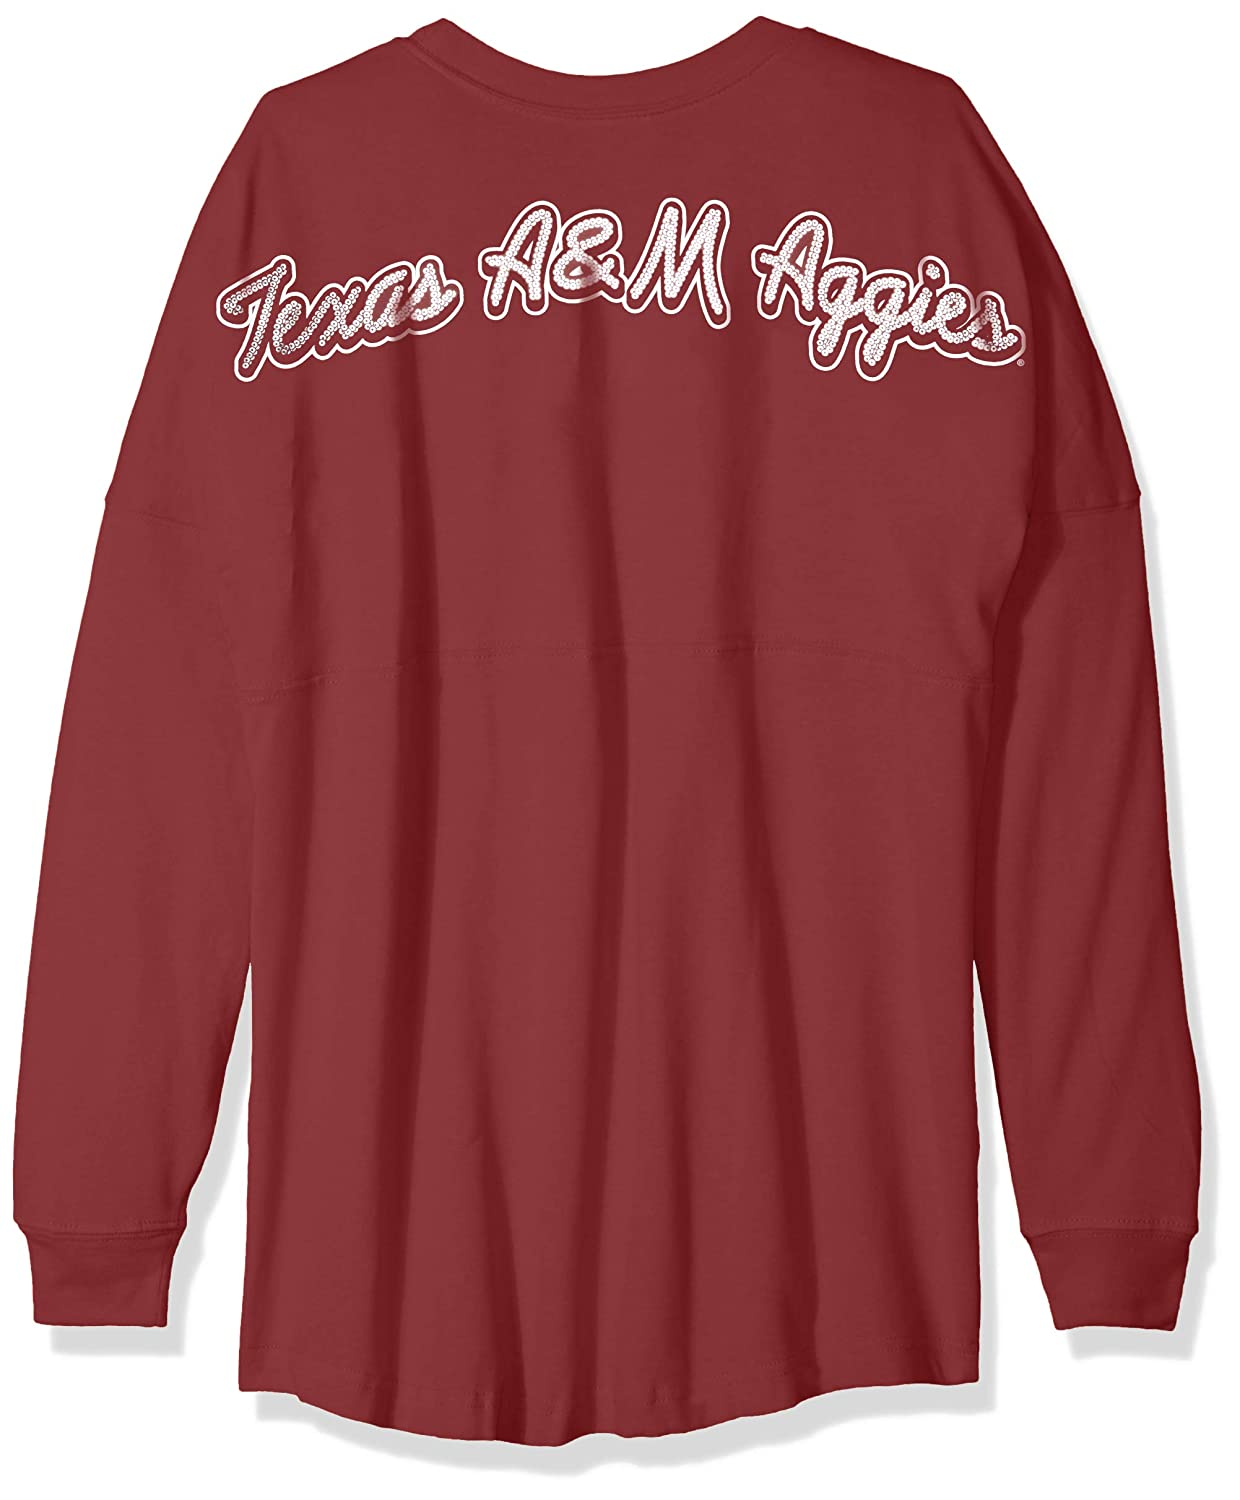 NCAA Texas A/&M Aggies Womens NCAA Womens Long Sleeve Mascot Style Teeknights Apparel NCAA Womens Long Sleeve Mascot Style Tee Large Maroon